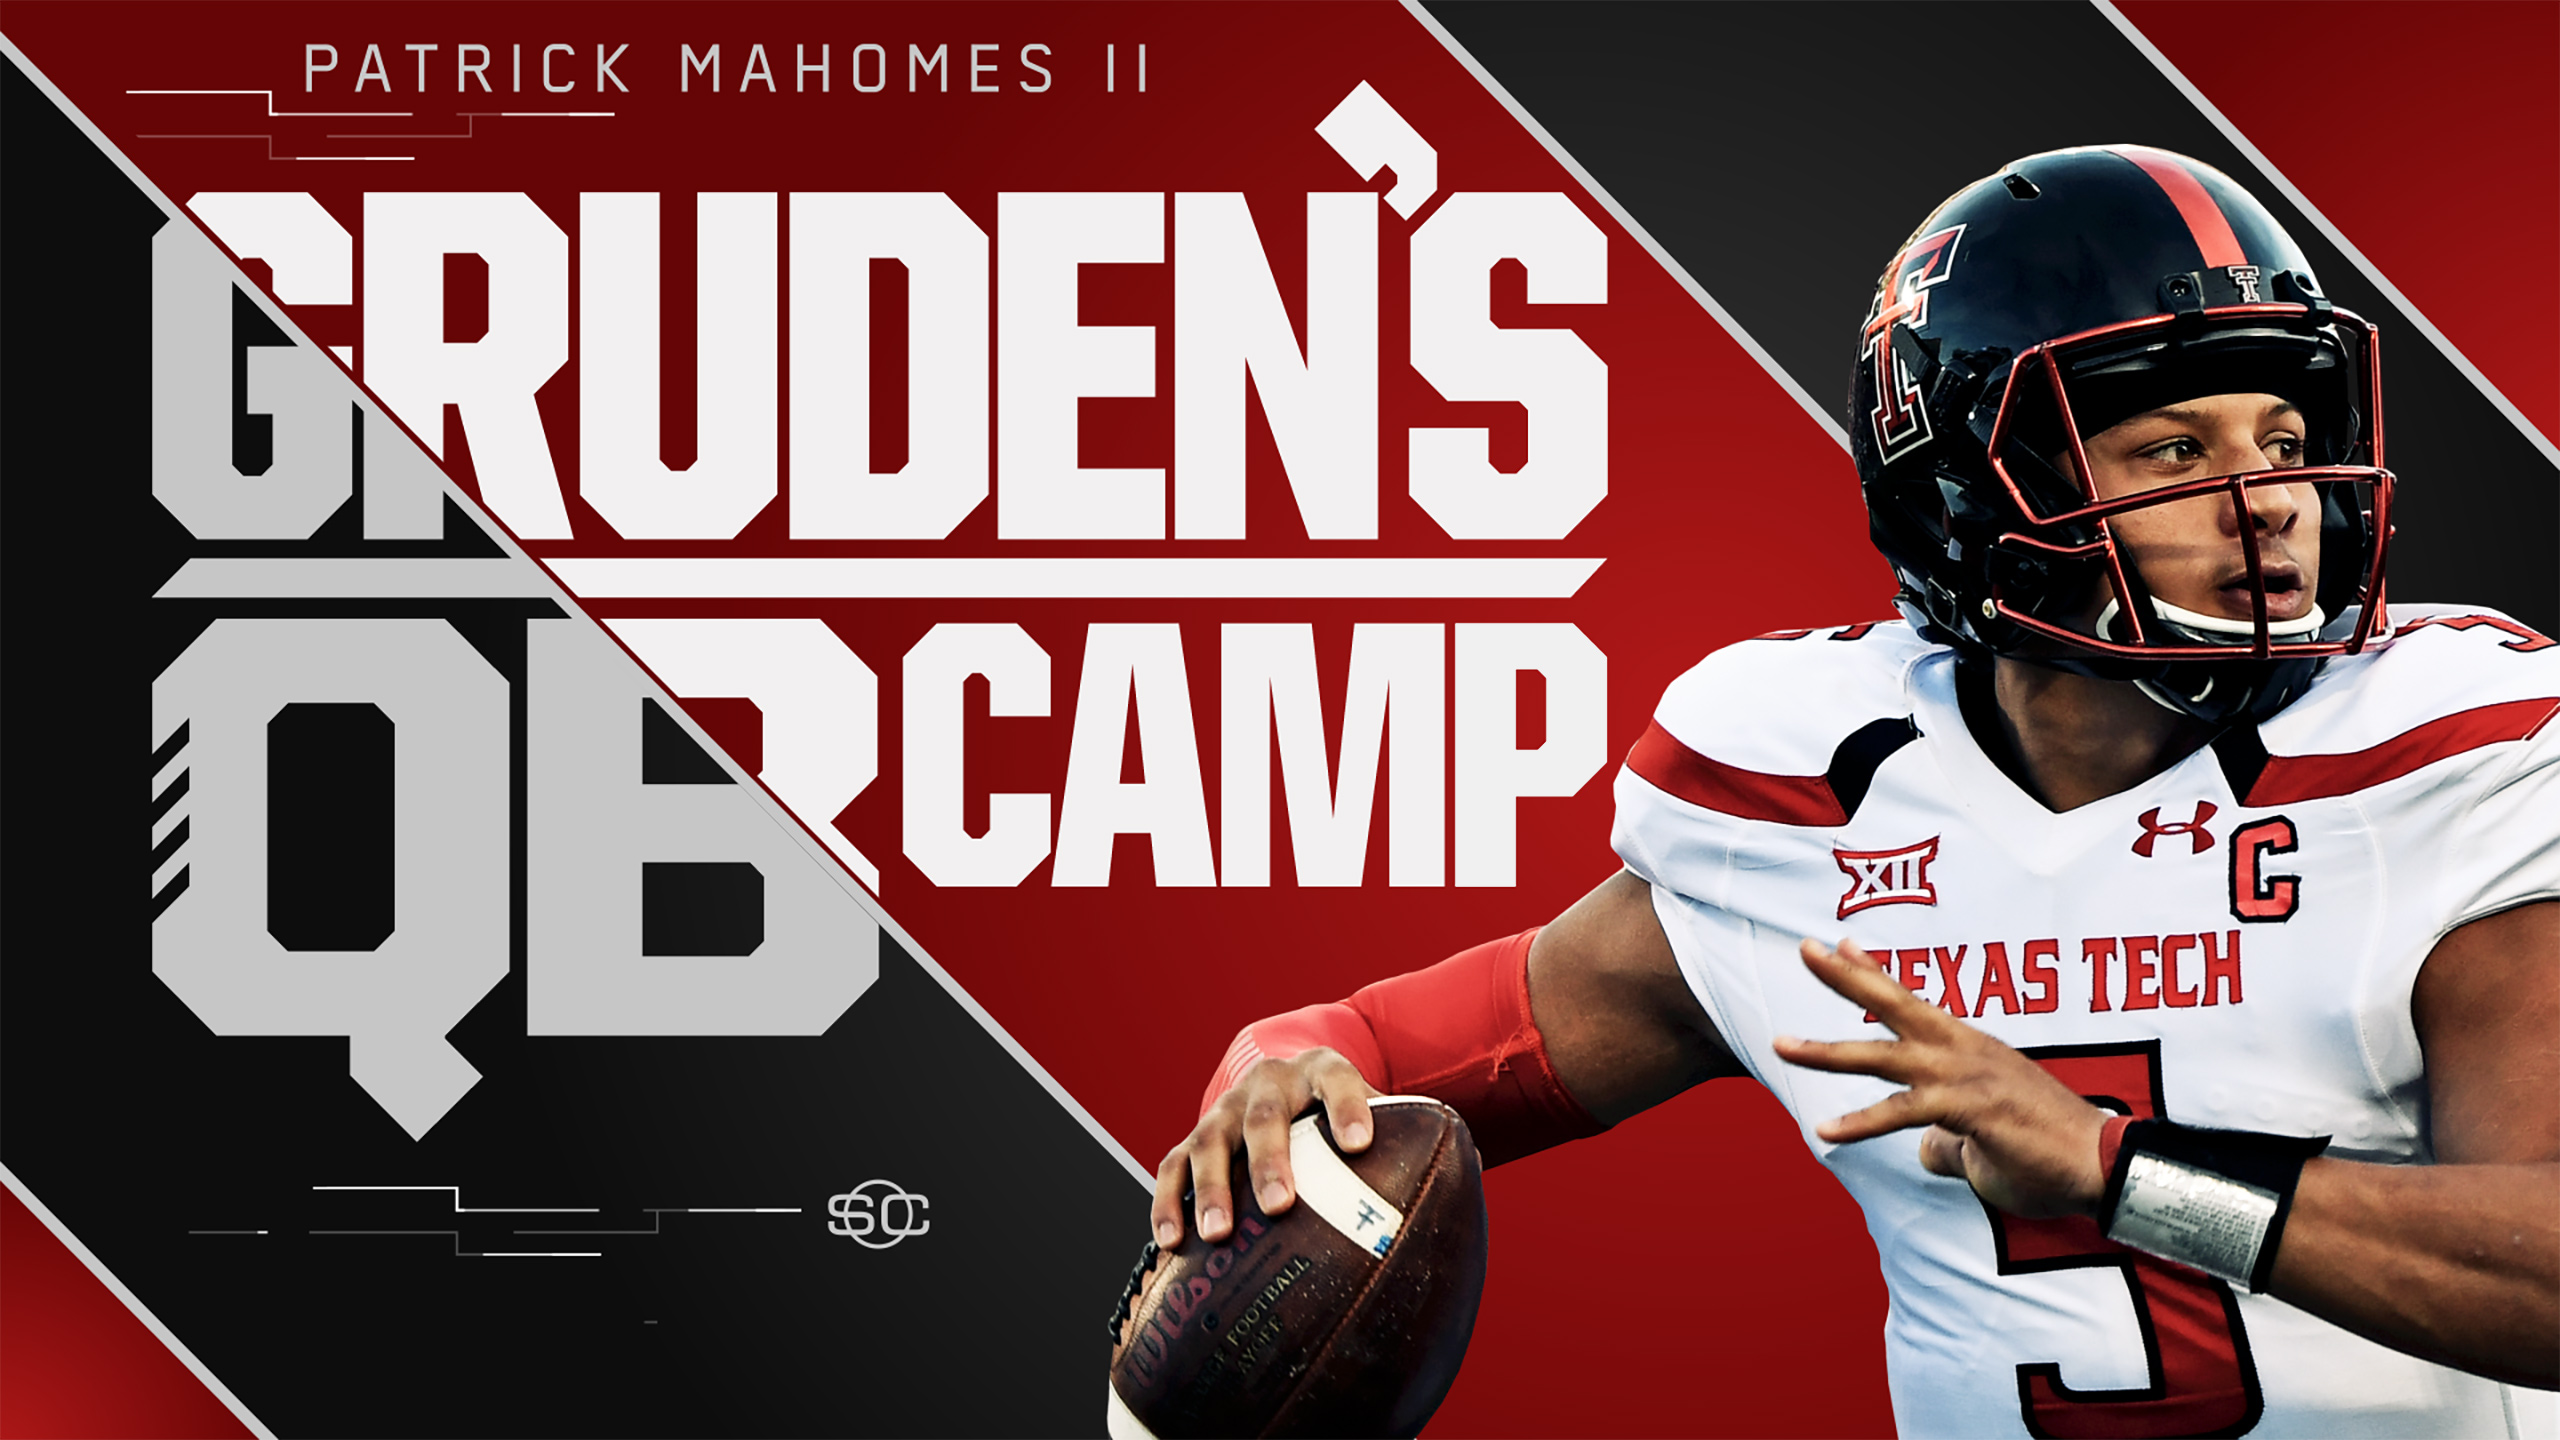 SportsCenter Special: Gruden's QB Camp presented by Maui Jim - Patrick Mahomes